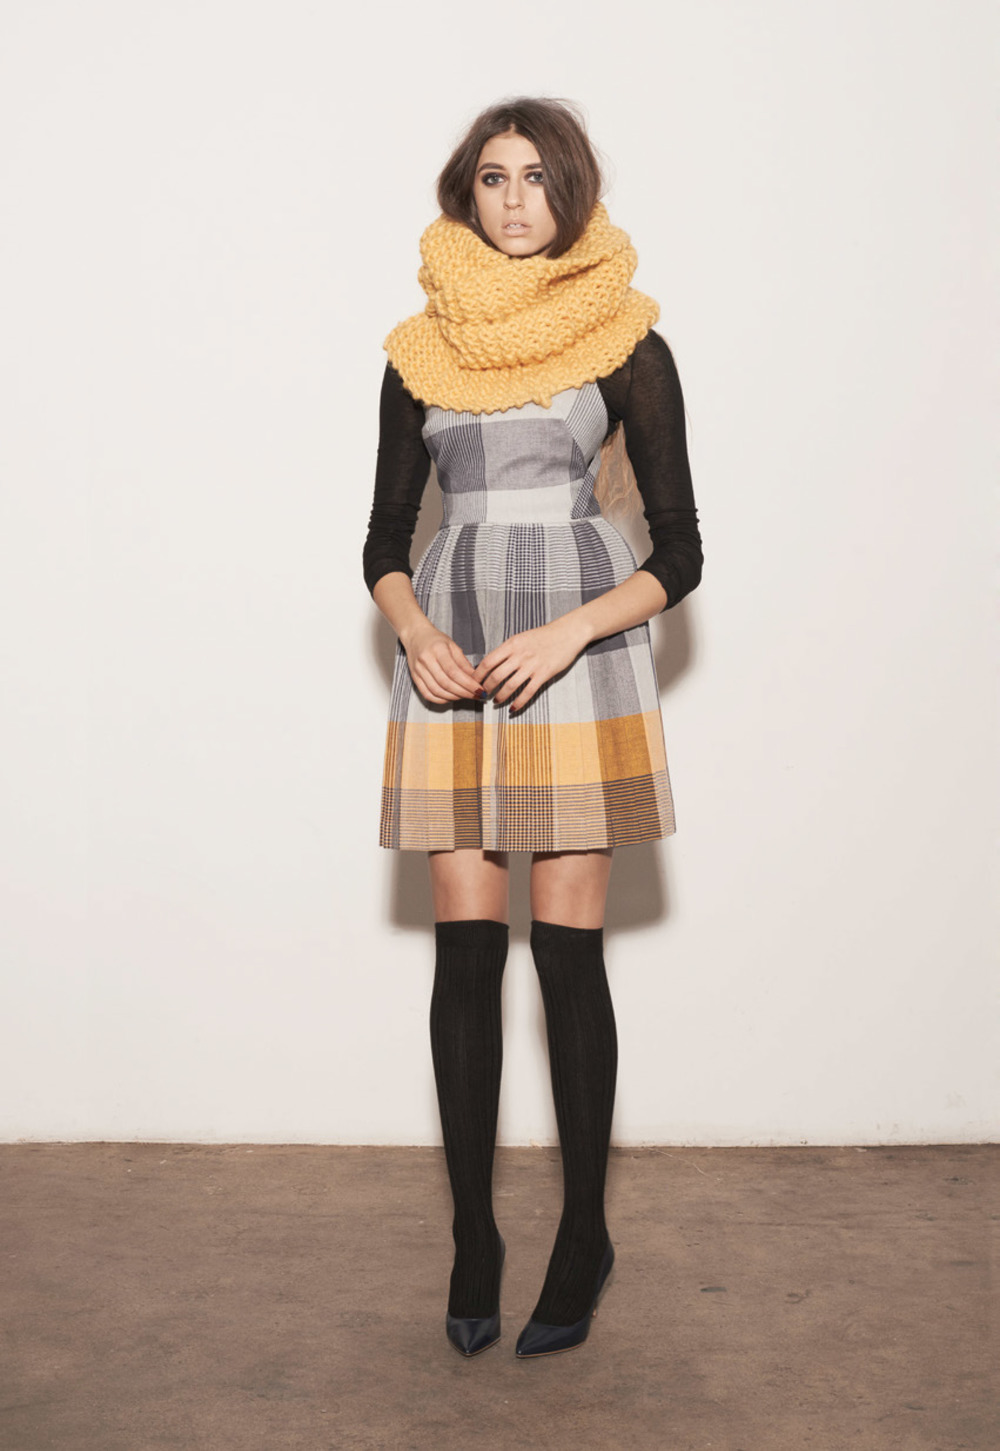 HarareFW14 Lookbook-3.jpg